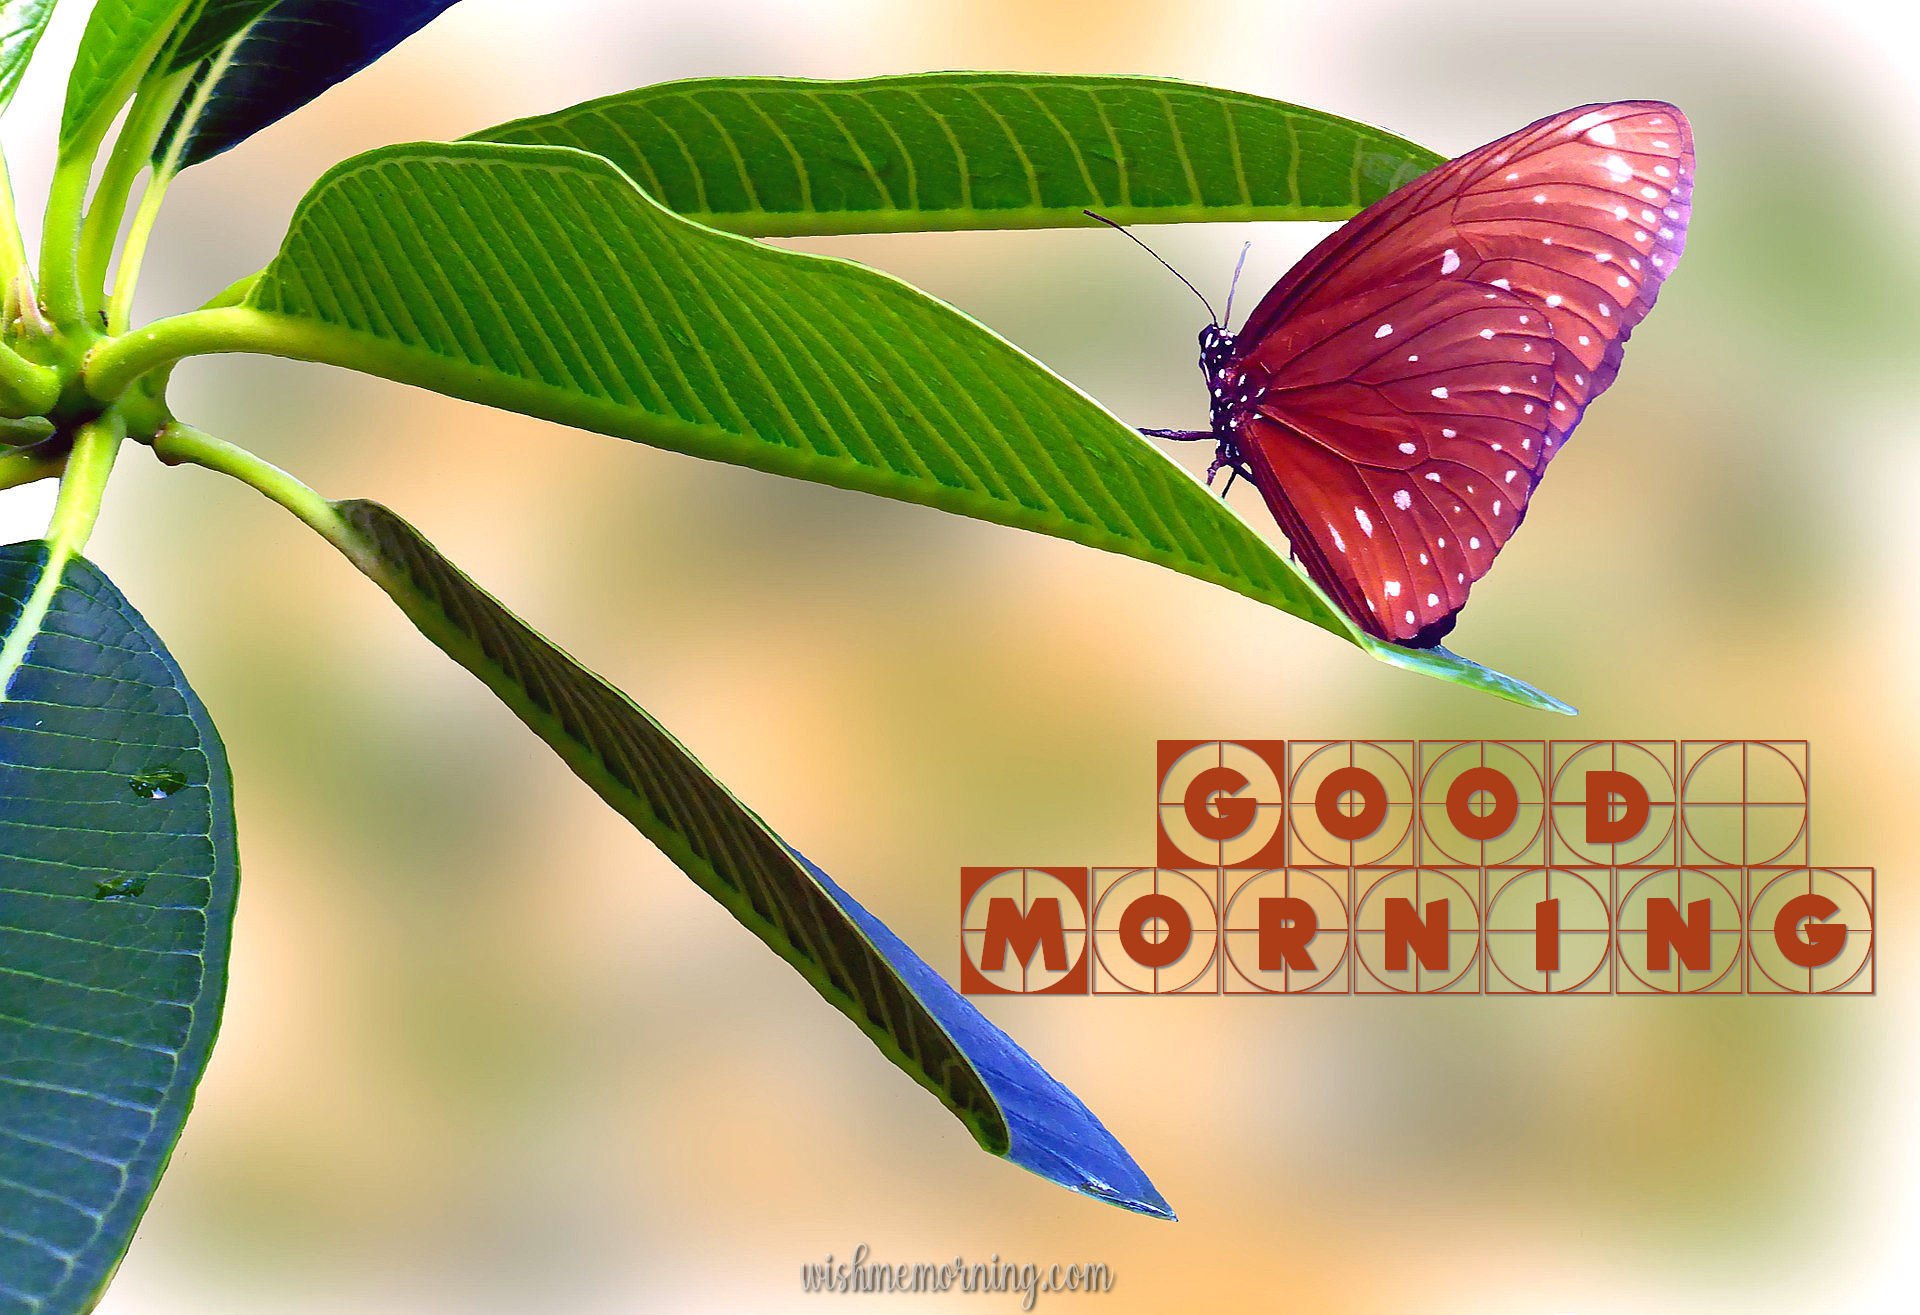 Beautiful Butterfly Good Morning Images wishmemorning.com 3